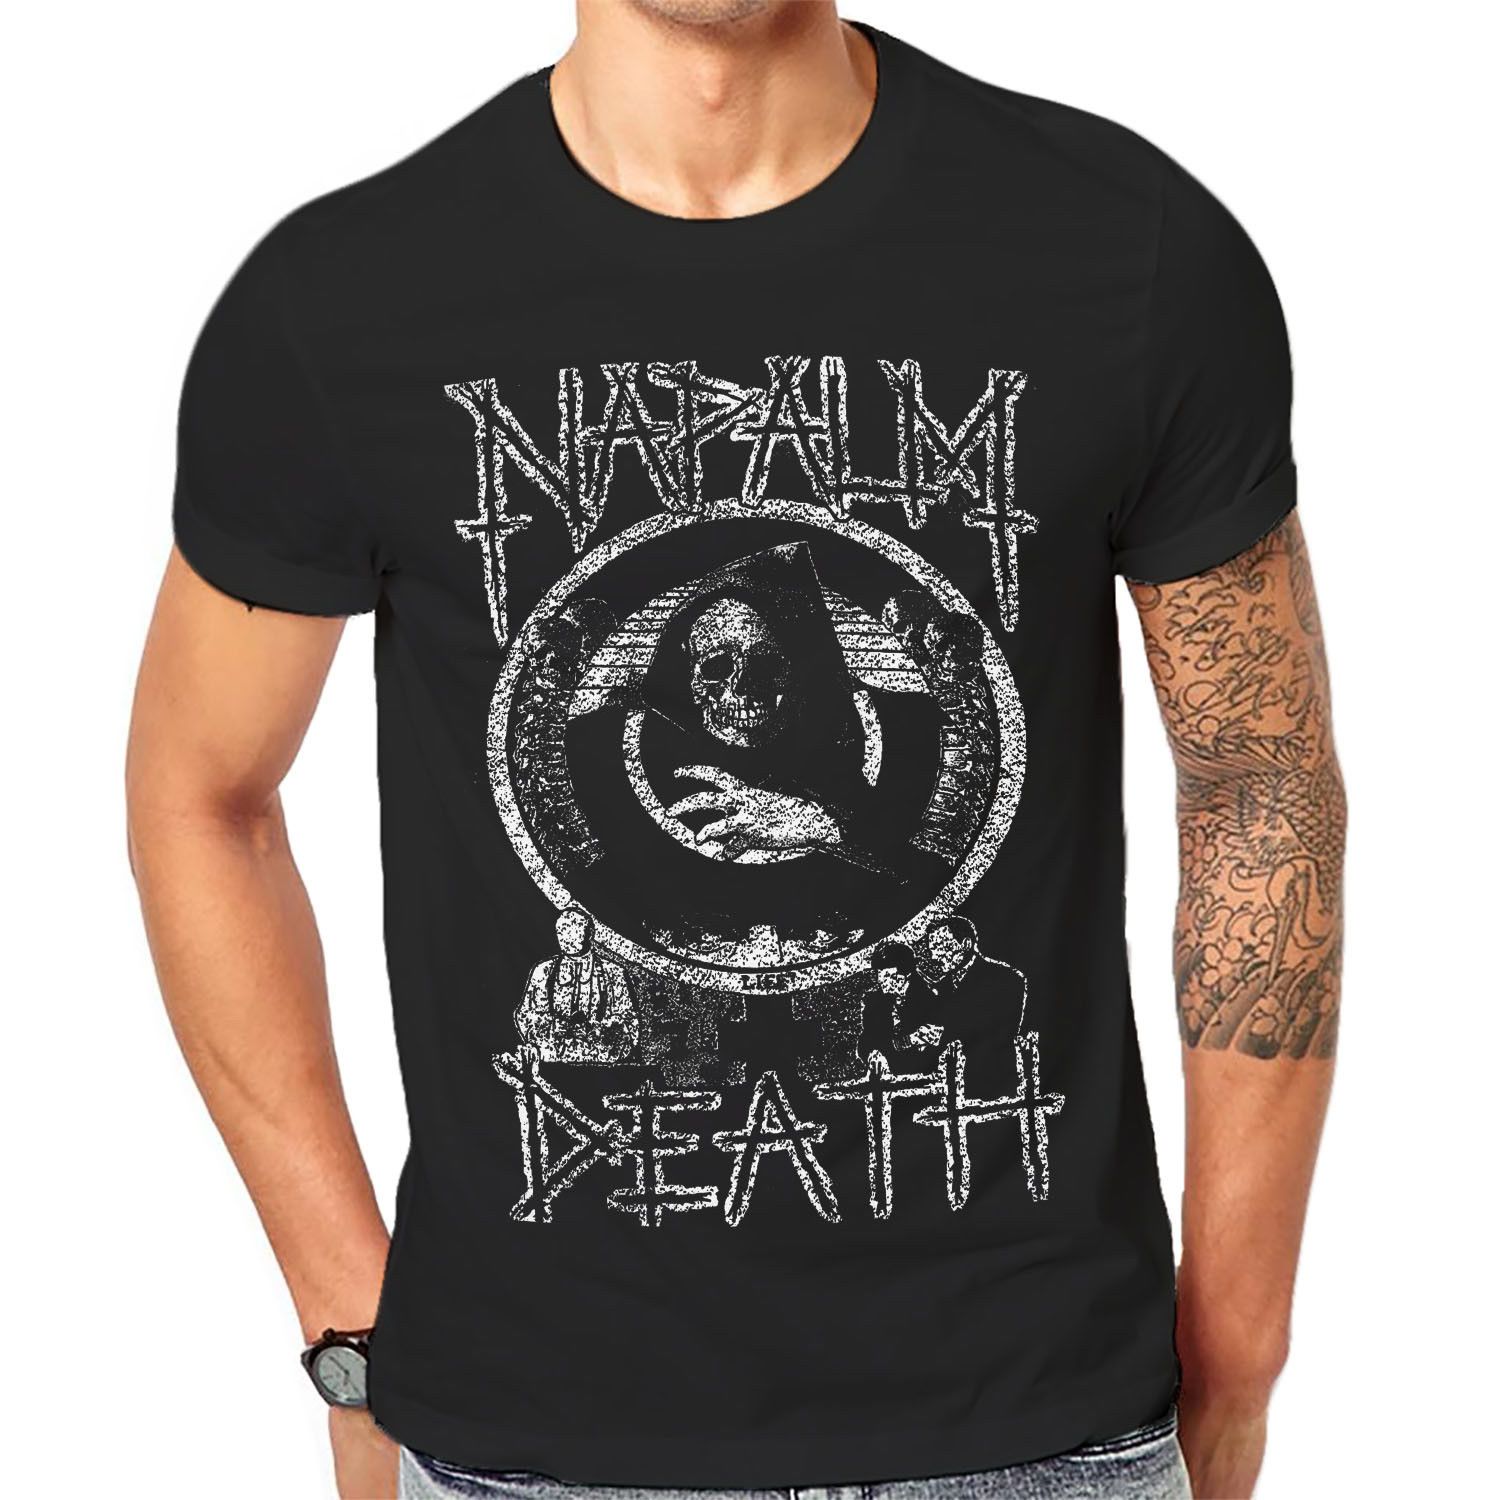 b9a0c9eb Napalm Death T Shirt Cool Black Graphic Print Mens Heavy Rock Band Tees 1 A  173 Mens T Shirts Summer O Neck Cotton-in T-Shirts from Men's Clothing on  ...